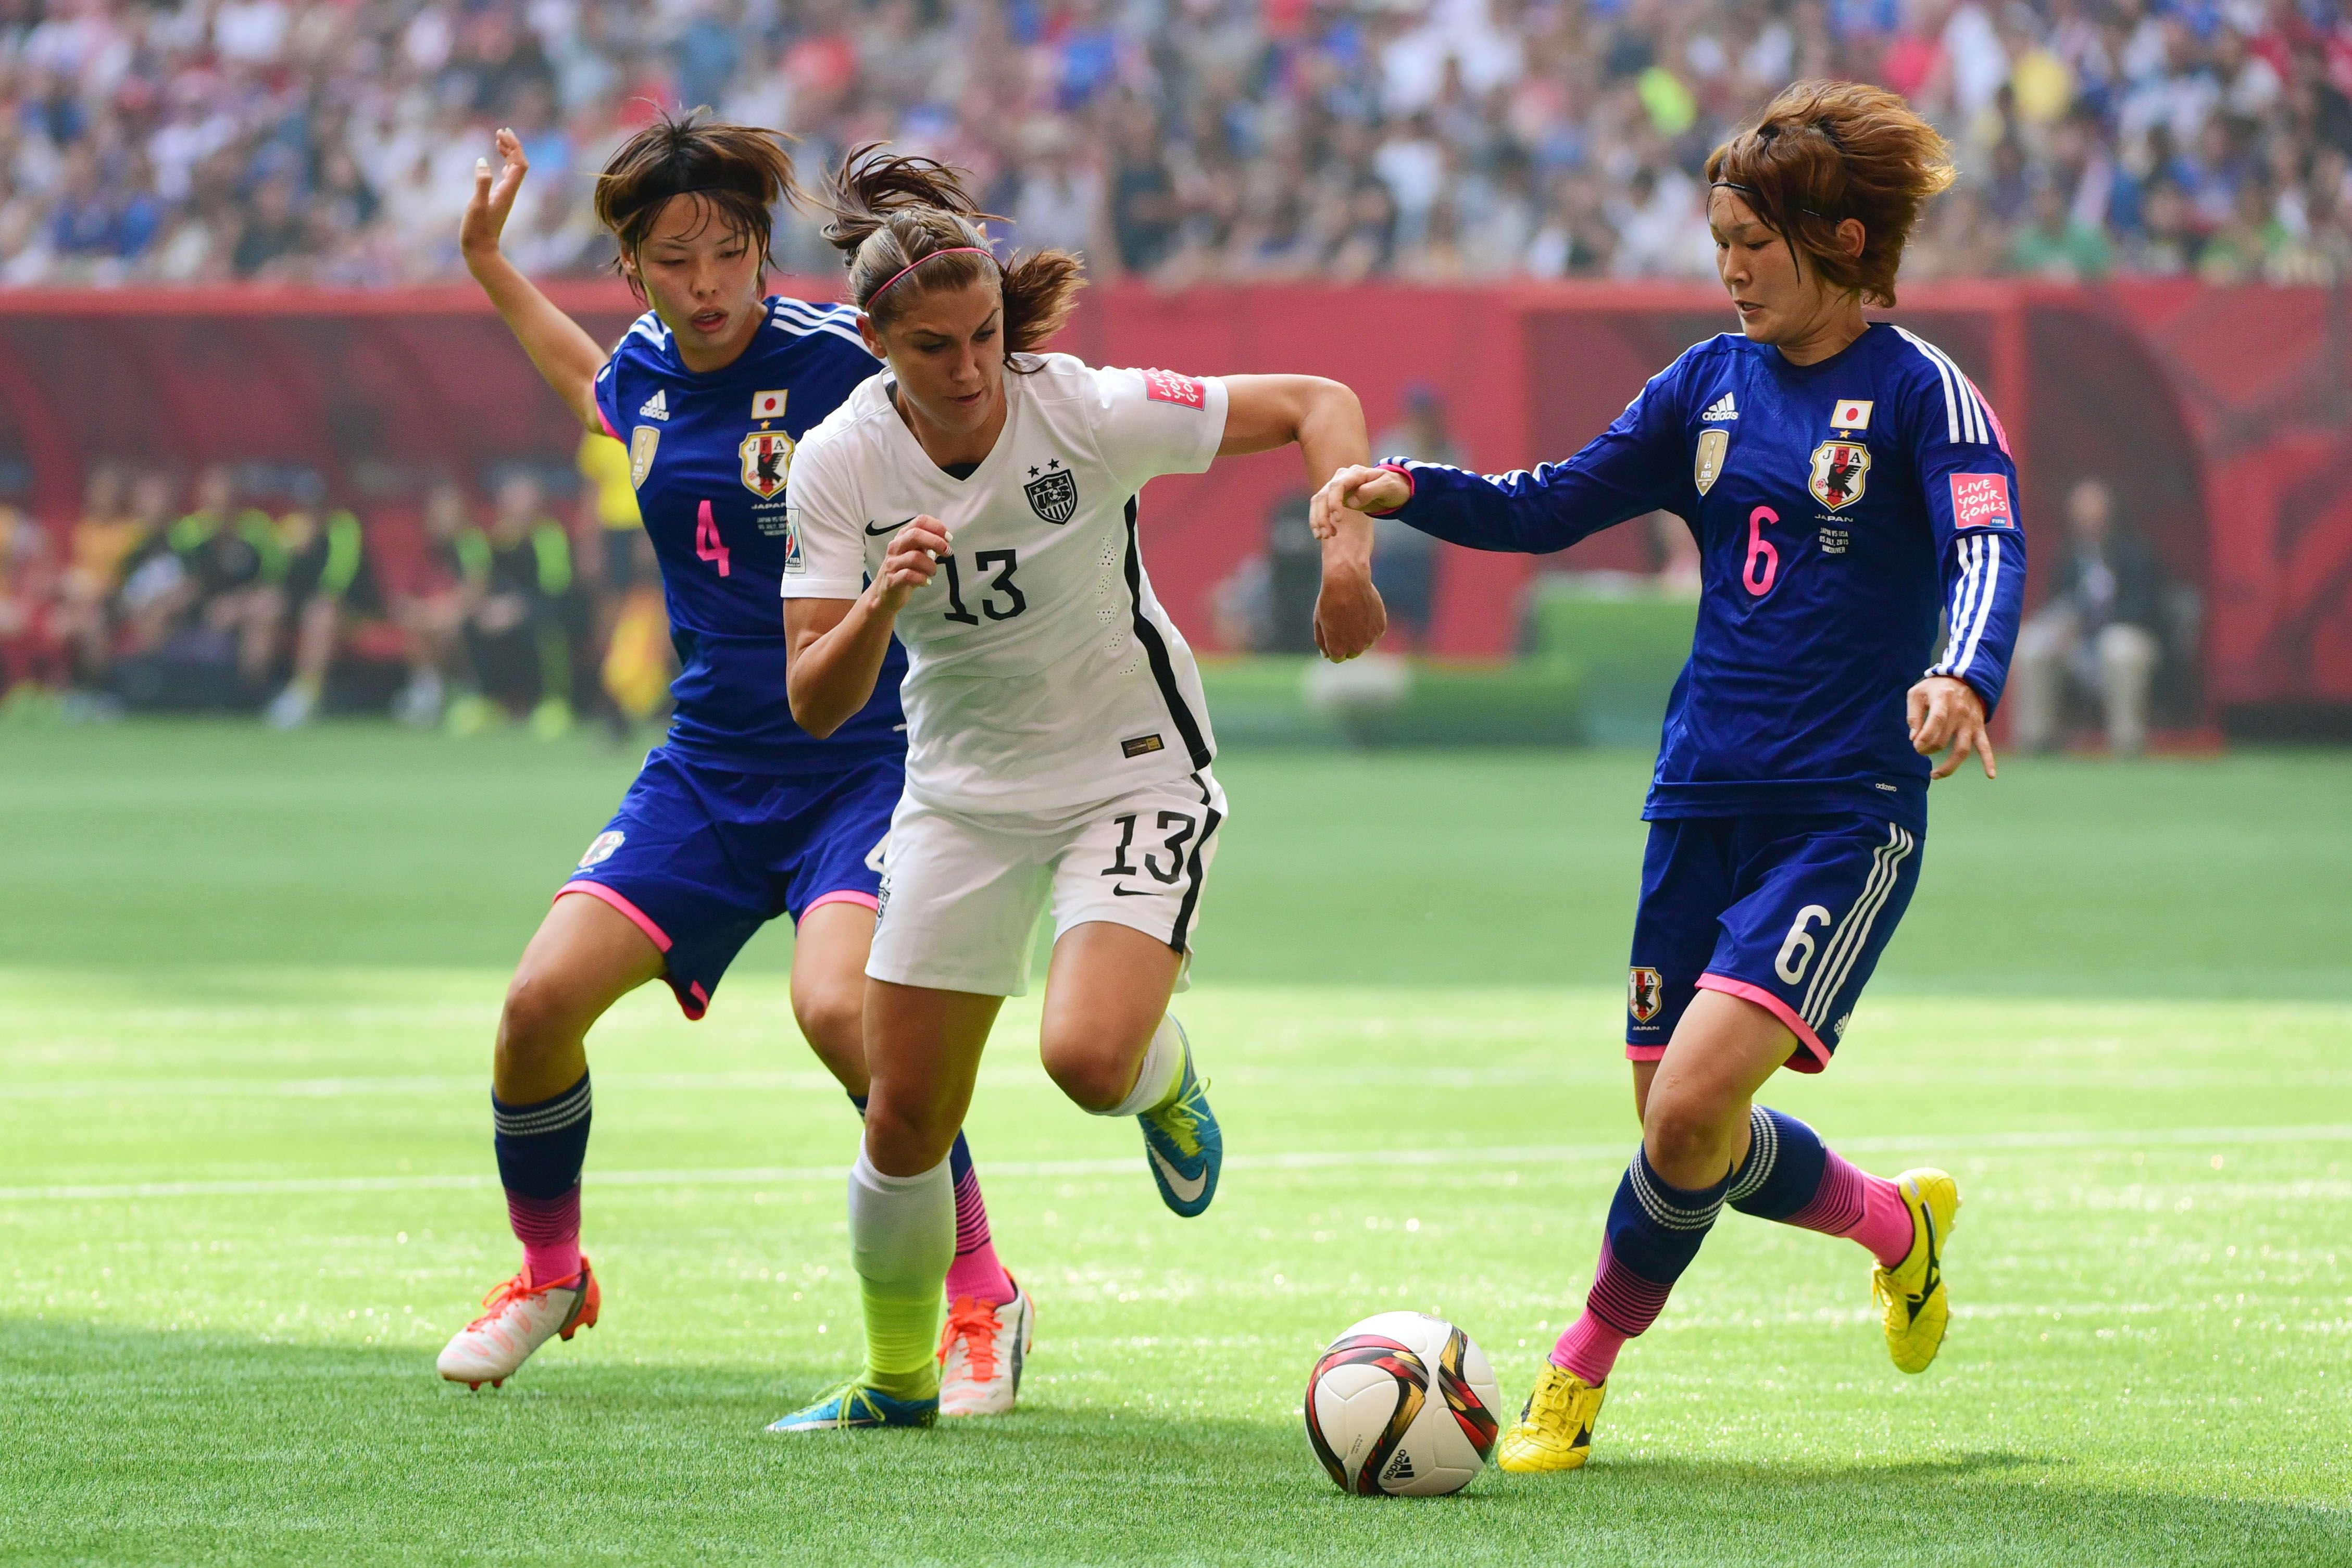 Jul 5, 2015; Vancouver, British Columbia, CAN; United States forward Alex Morgan (13) drives the ball between Japan defender Saki Kumagai (4) and midfielder Mizuho Sakaguchi (6) in the first half of the final of the FIFA 2015 Women's World Cup at BC Place Stadium.